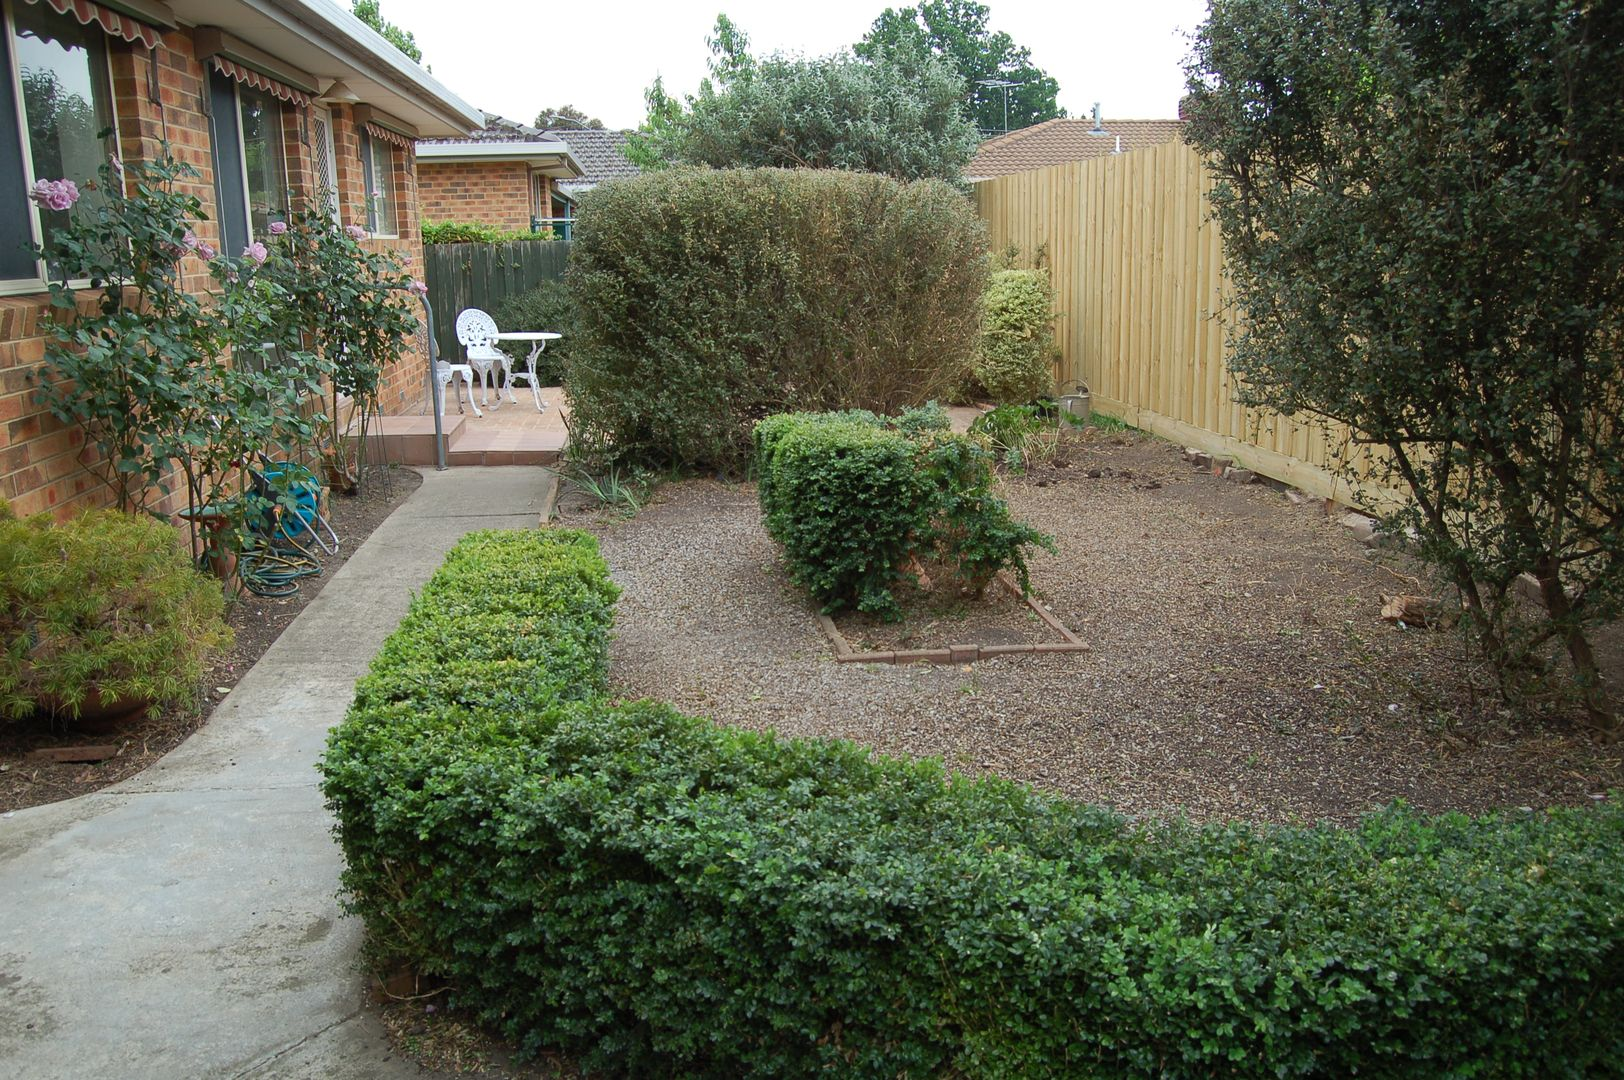 Unit 2/38 FOREST STREET, Whittlesea VIC 3757, Image 2